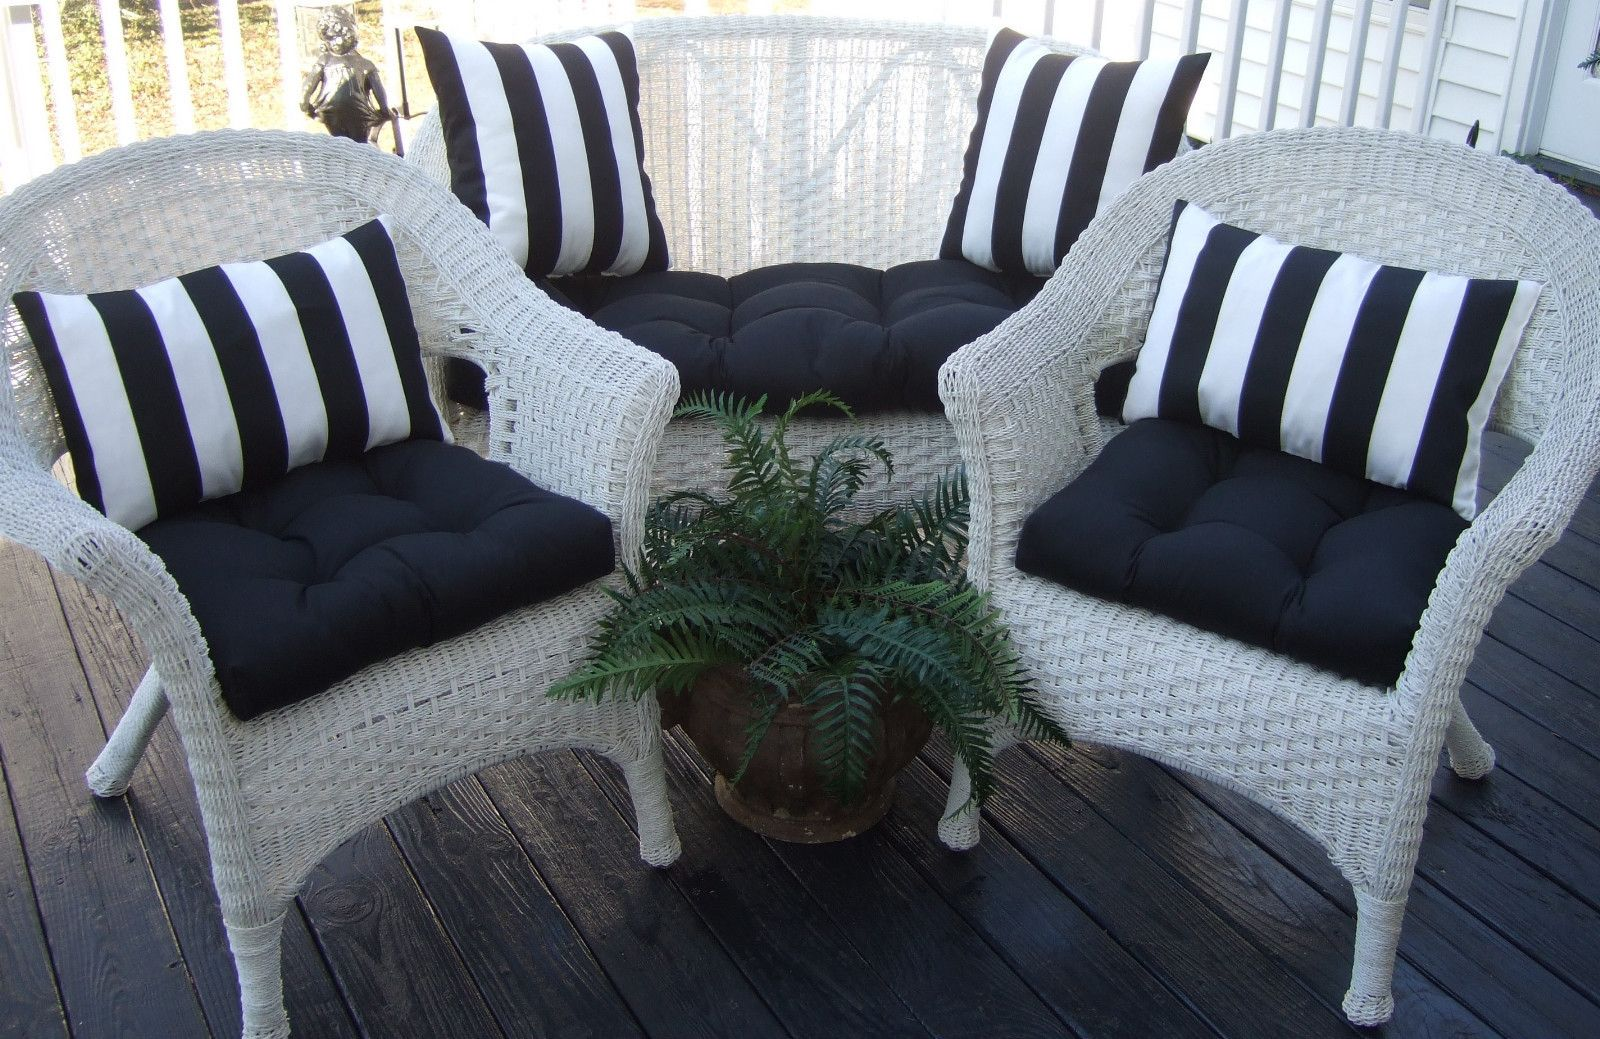 Details About Outdoor Wicker Cushions & Pillows 7 PC SET